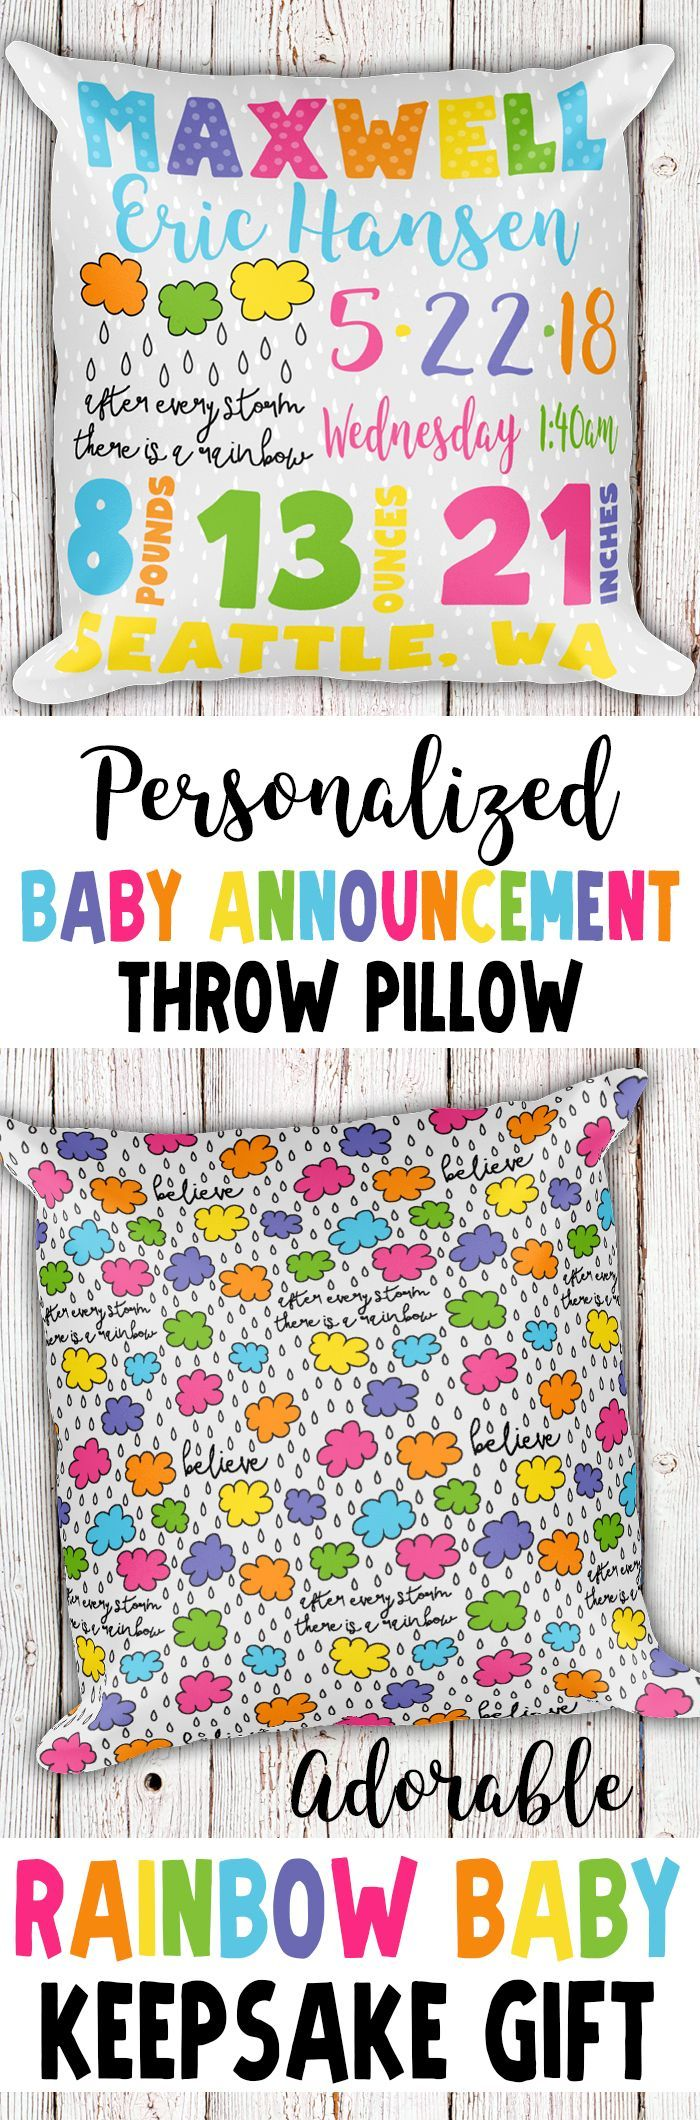 Personalized Birth Announcement Pillow, Personalized Baby Announcement Pillow, Birth Stats Pillow, Personalized Rainbow Baby Gift